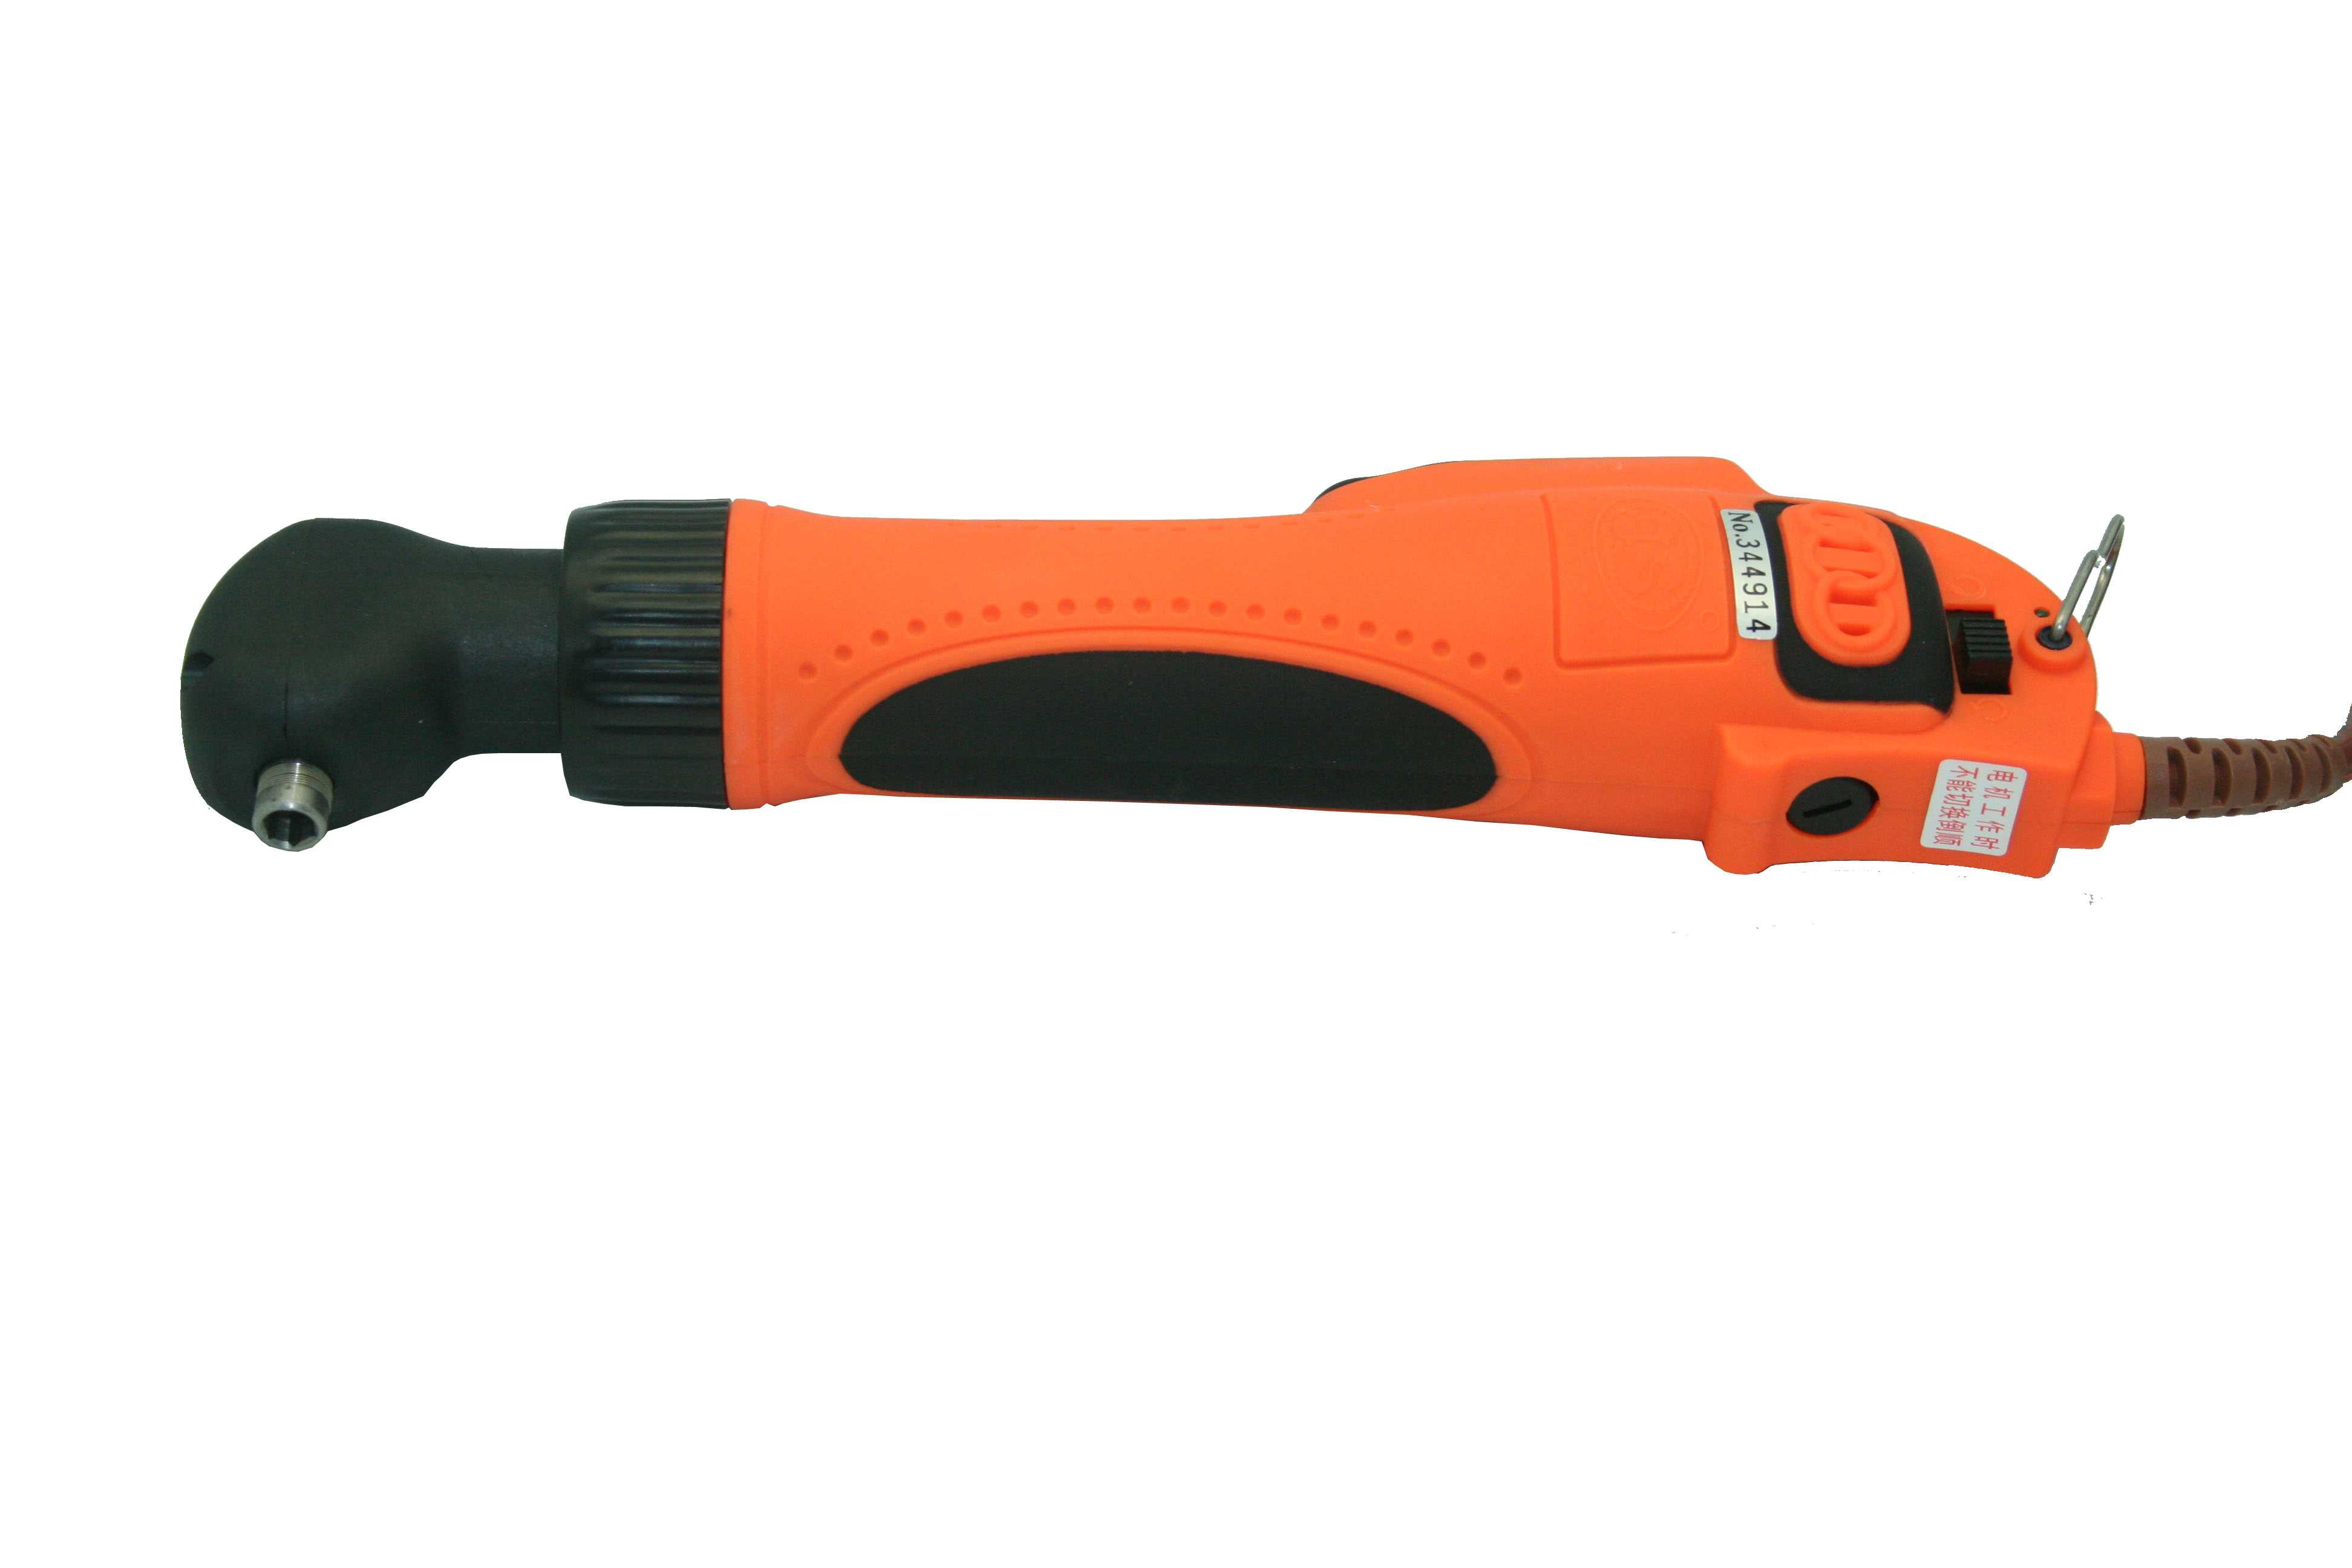 SJ-90A Electric Rechargeable Screwdriver Bit With 220-240V